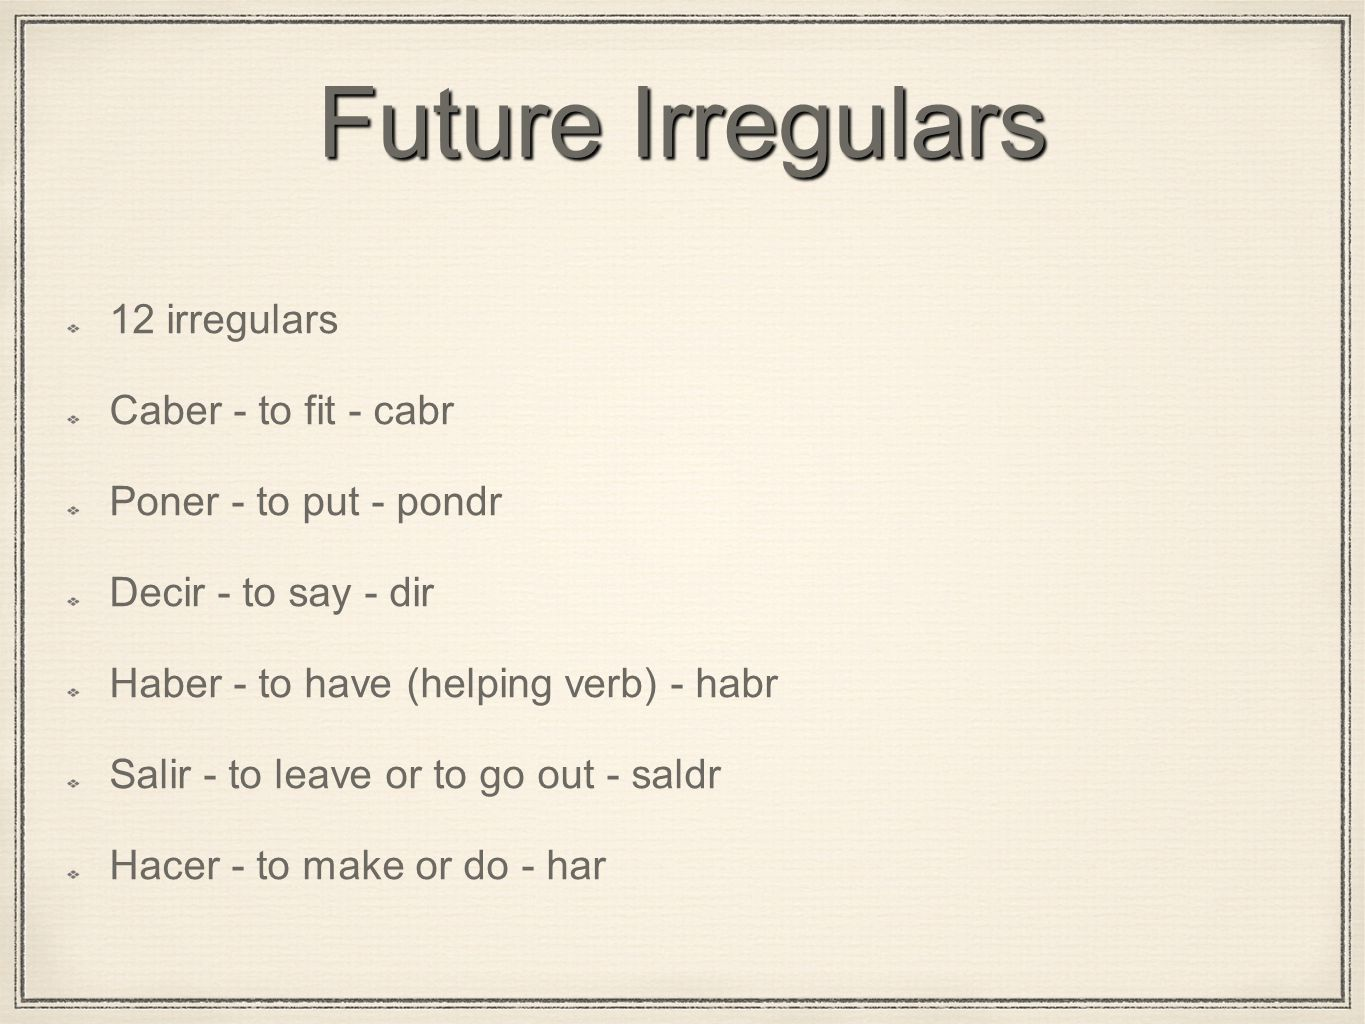 Future Irregulars 12 irregulars Caber - to fit - cabr Poner - to put - pondr Decir - to say - dir Haber - to have (helping verb) - habr Salir - to lea